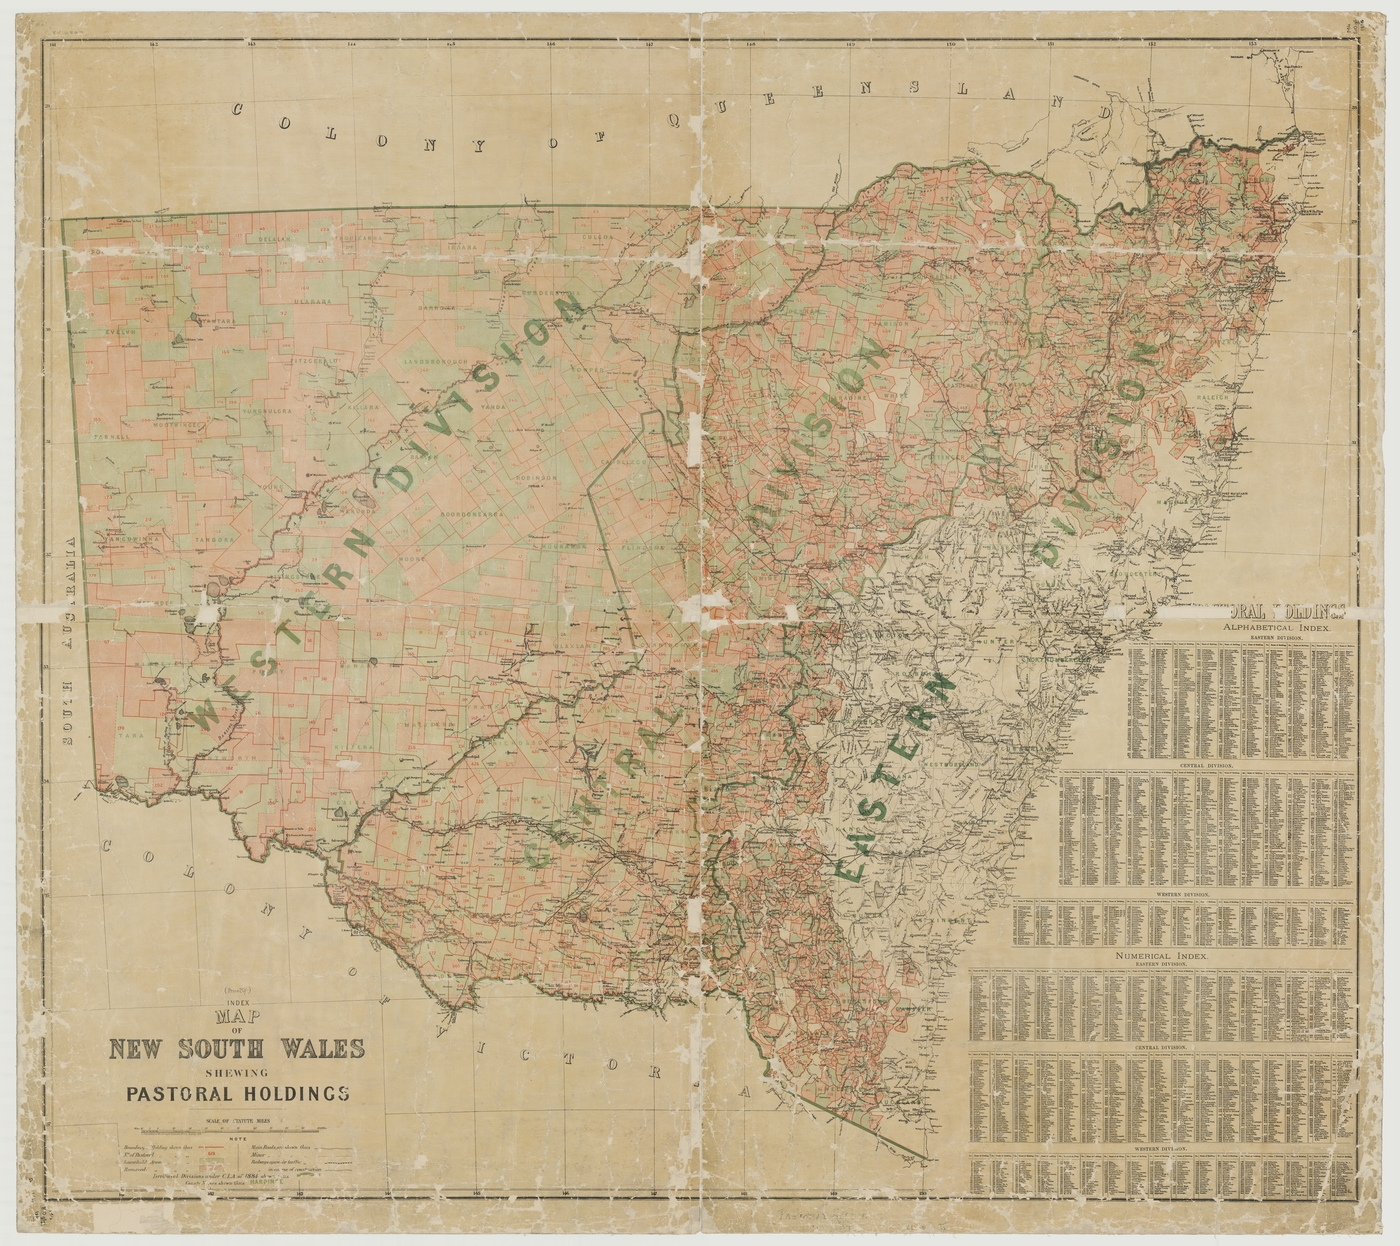 index map of new south wales shewing pastoral holdings cartographic material prepared by surveyor generals office